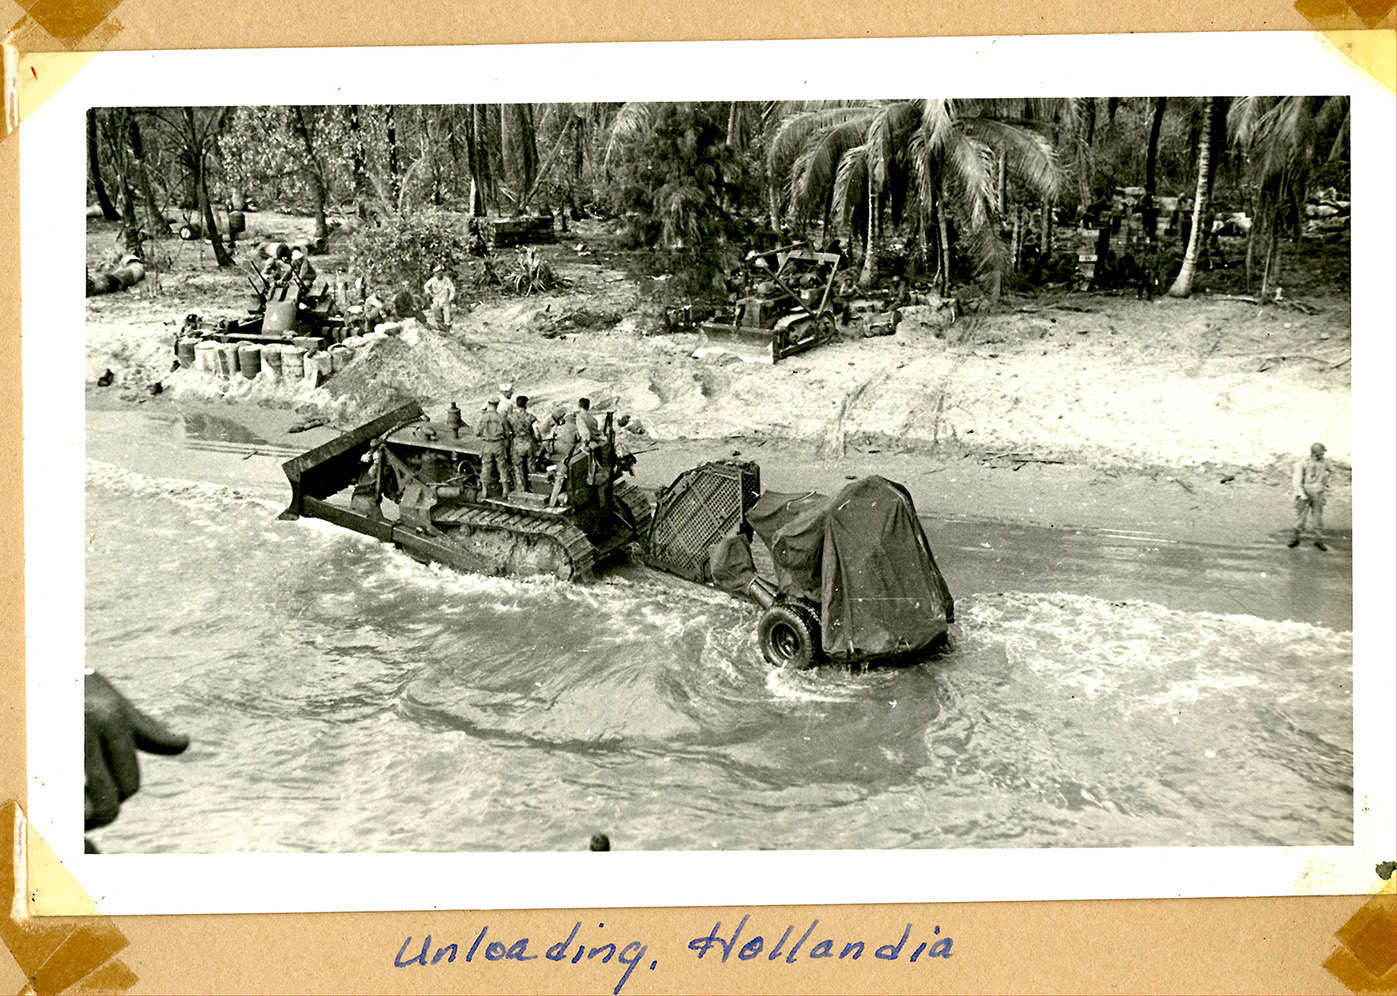 overhead view of men on a bulldozer in shallow water